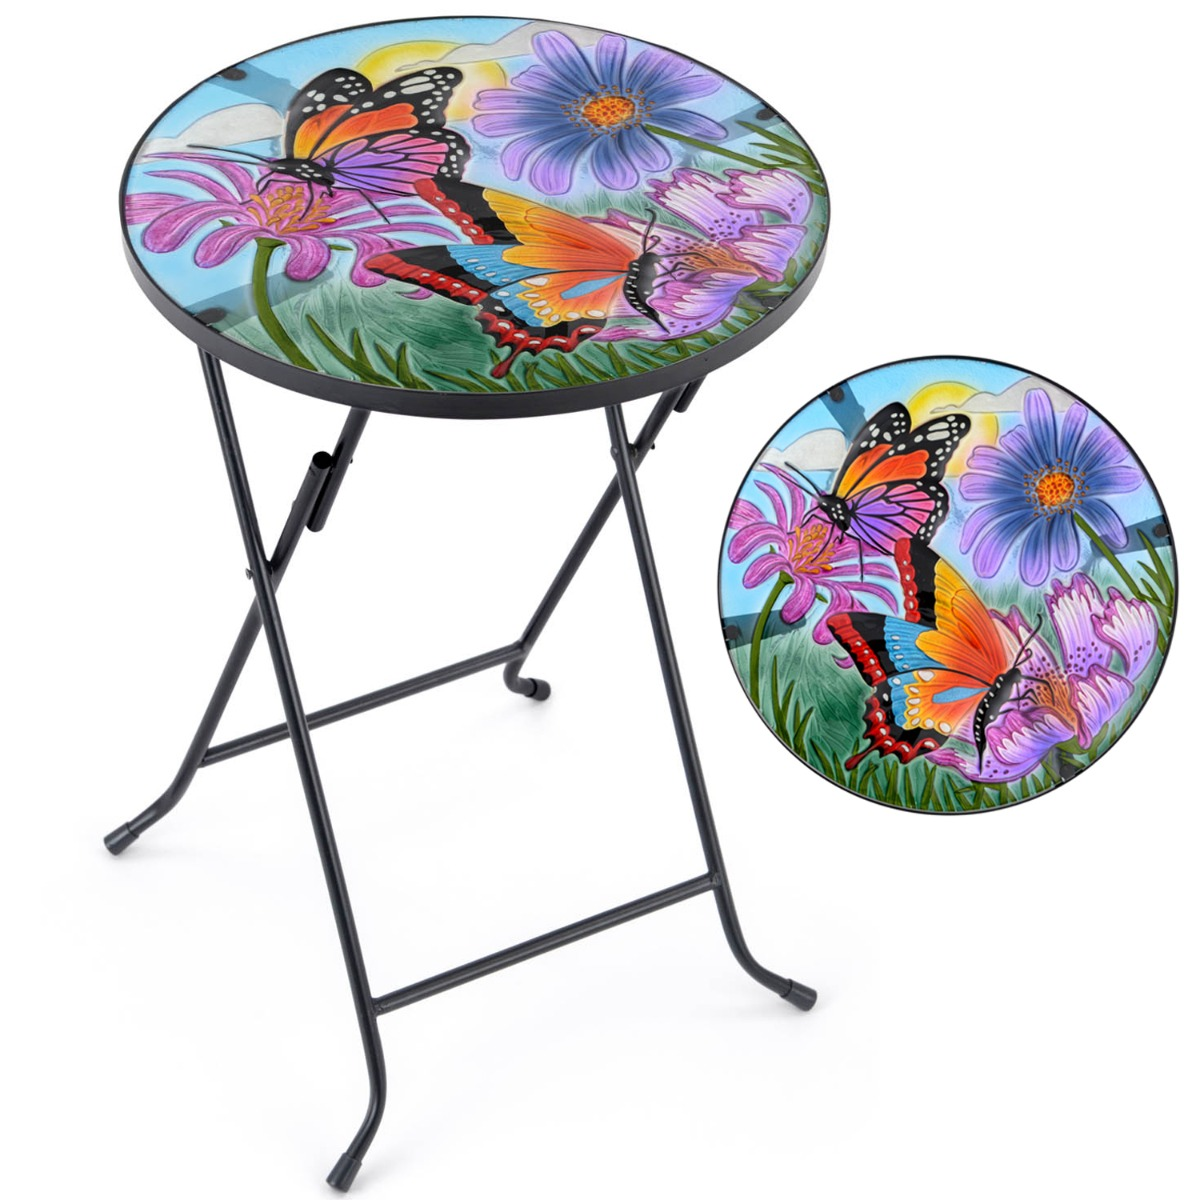 Image of Glass Butterfly Garden Table